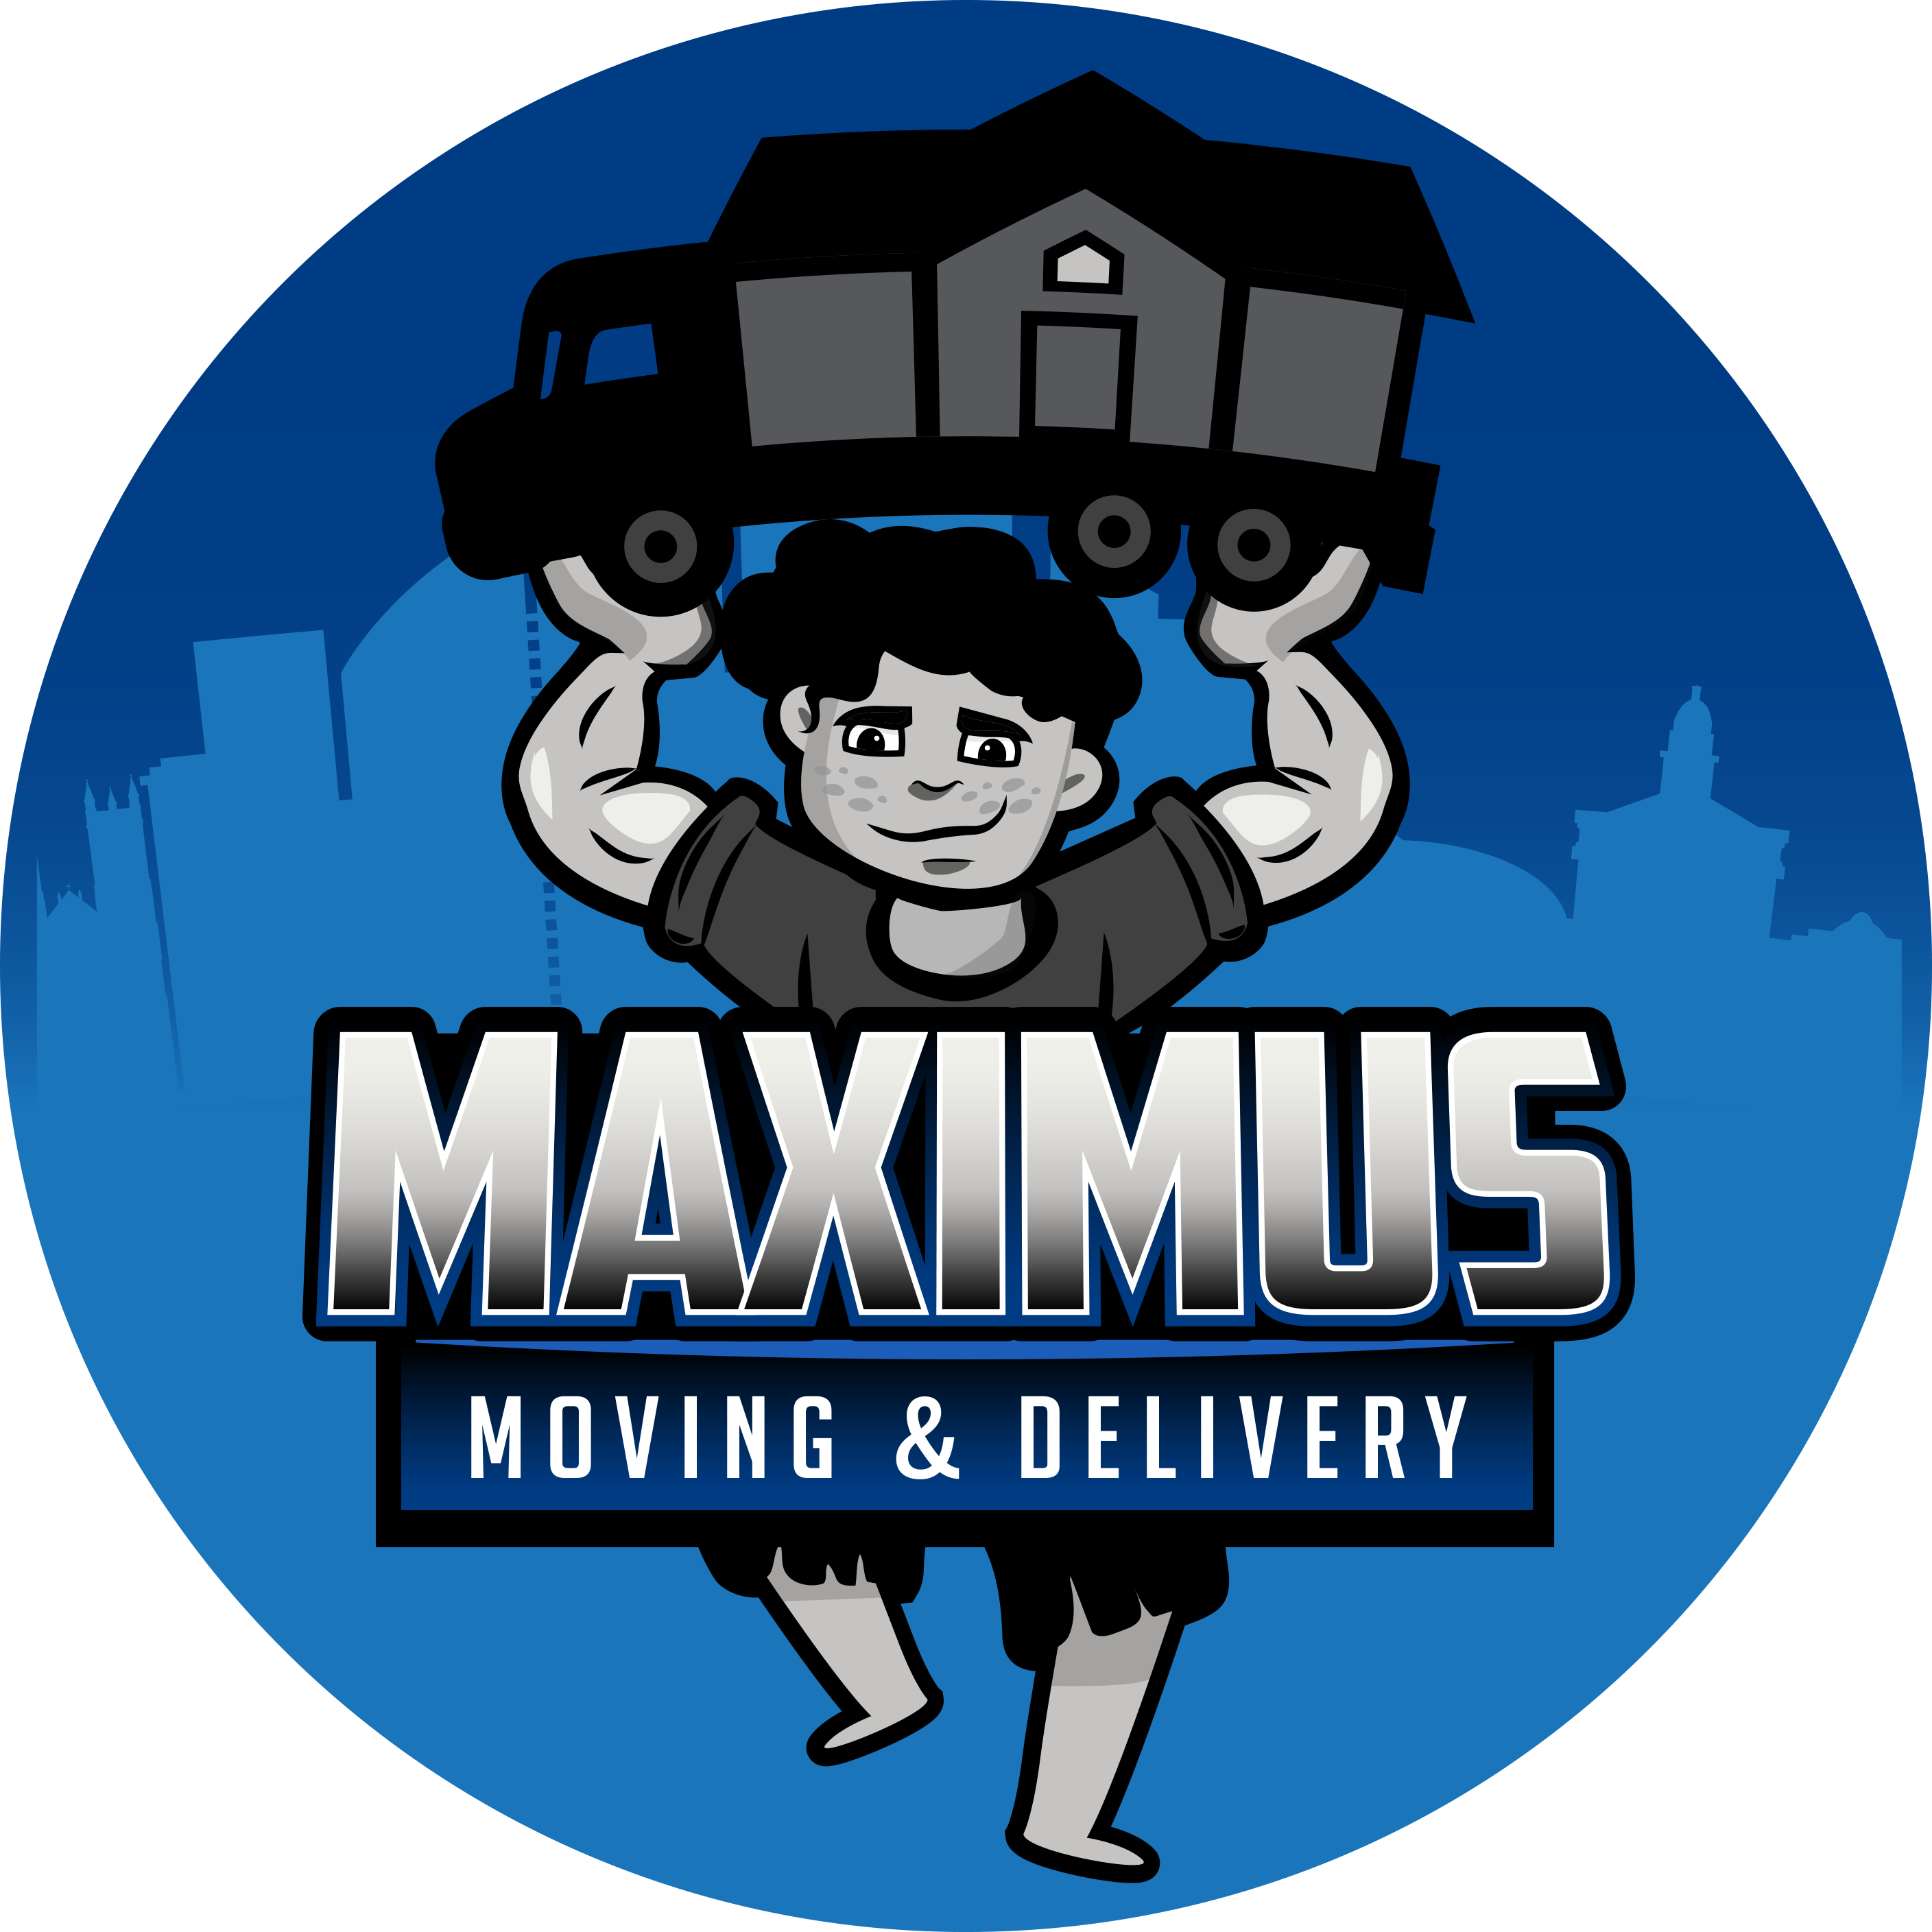 Maximus Moving & Delivery